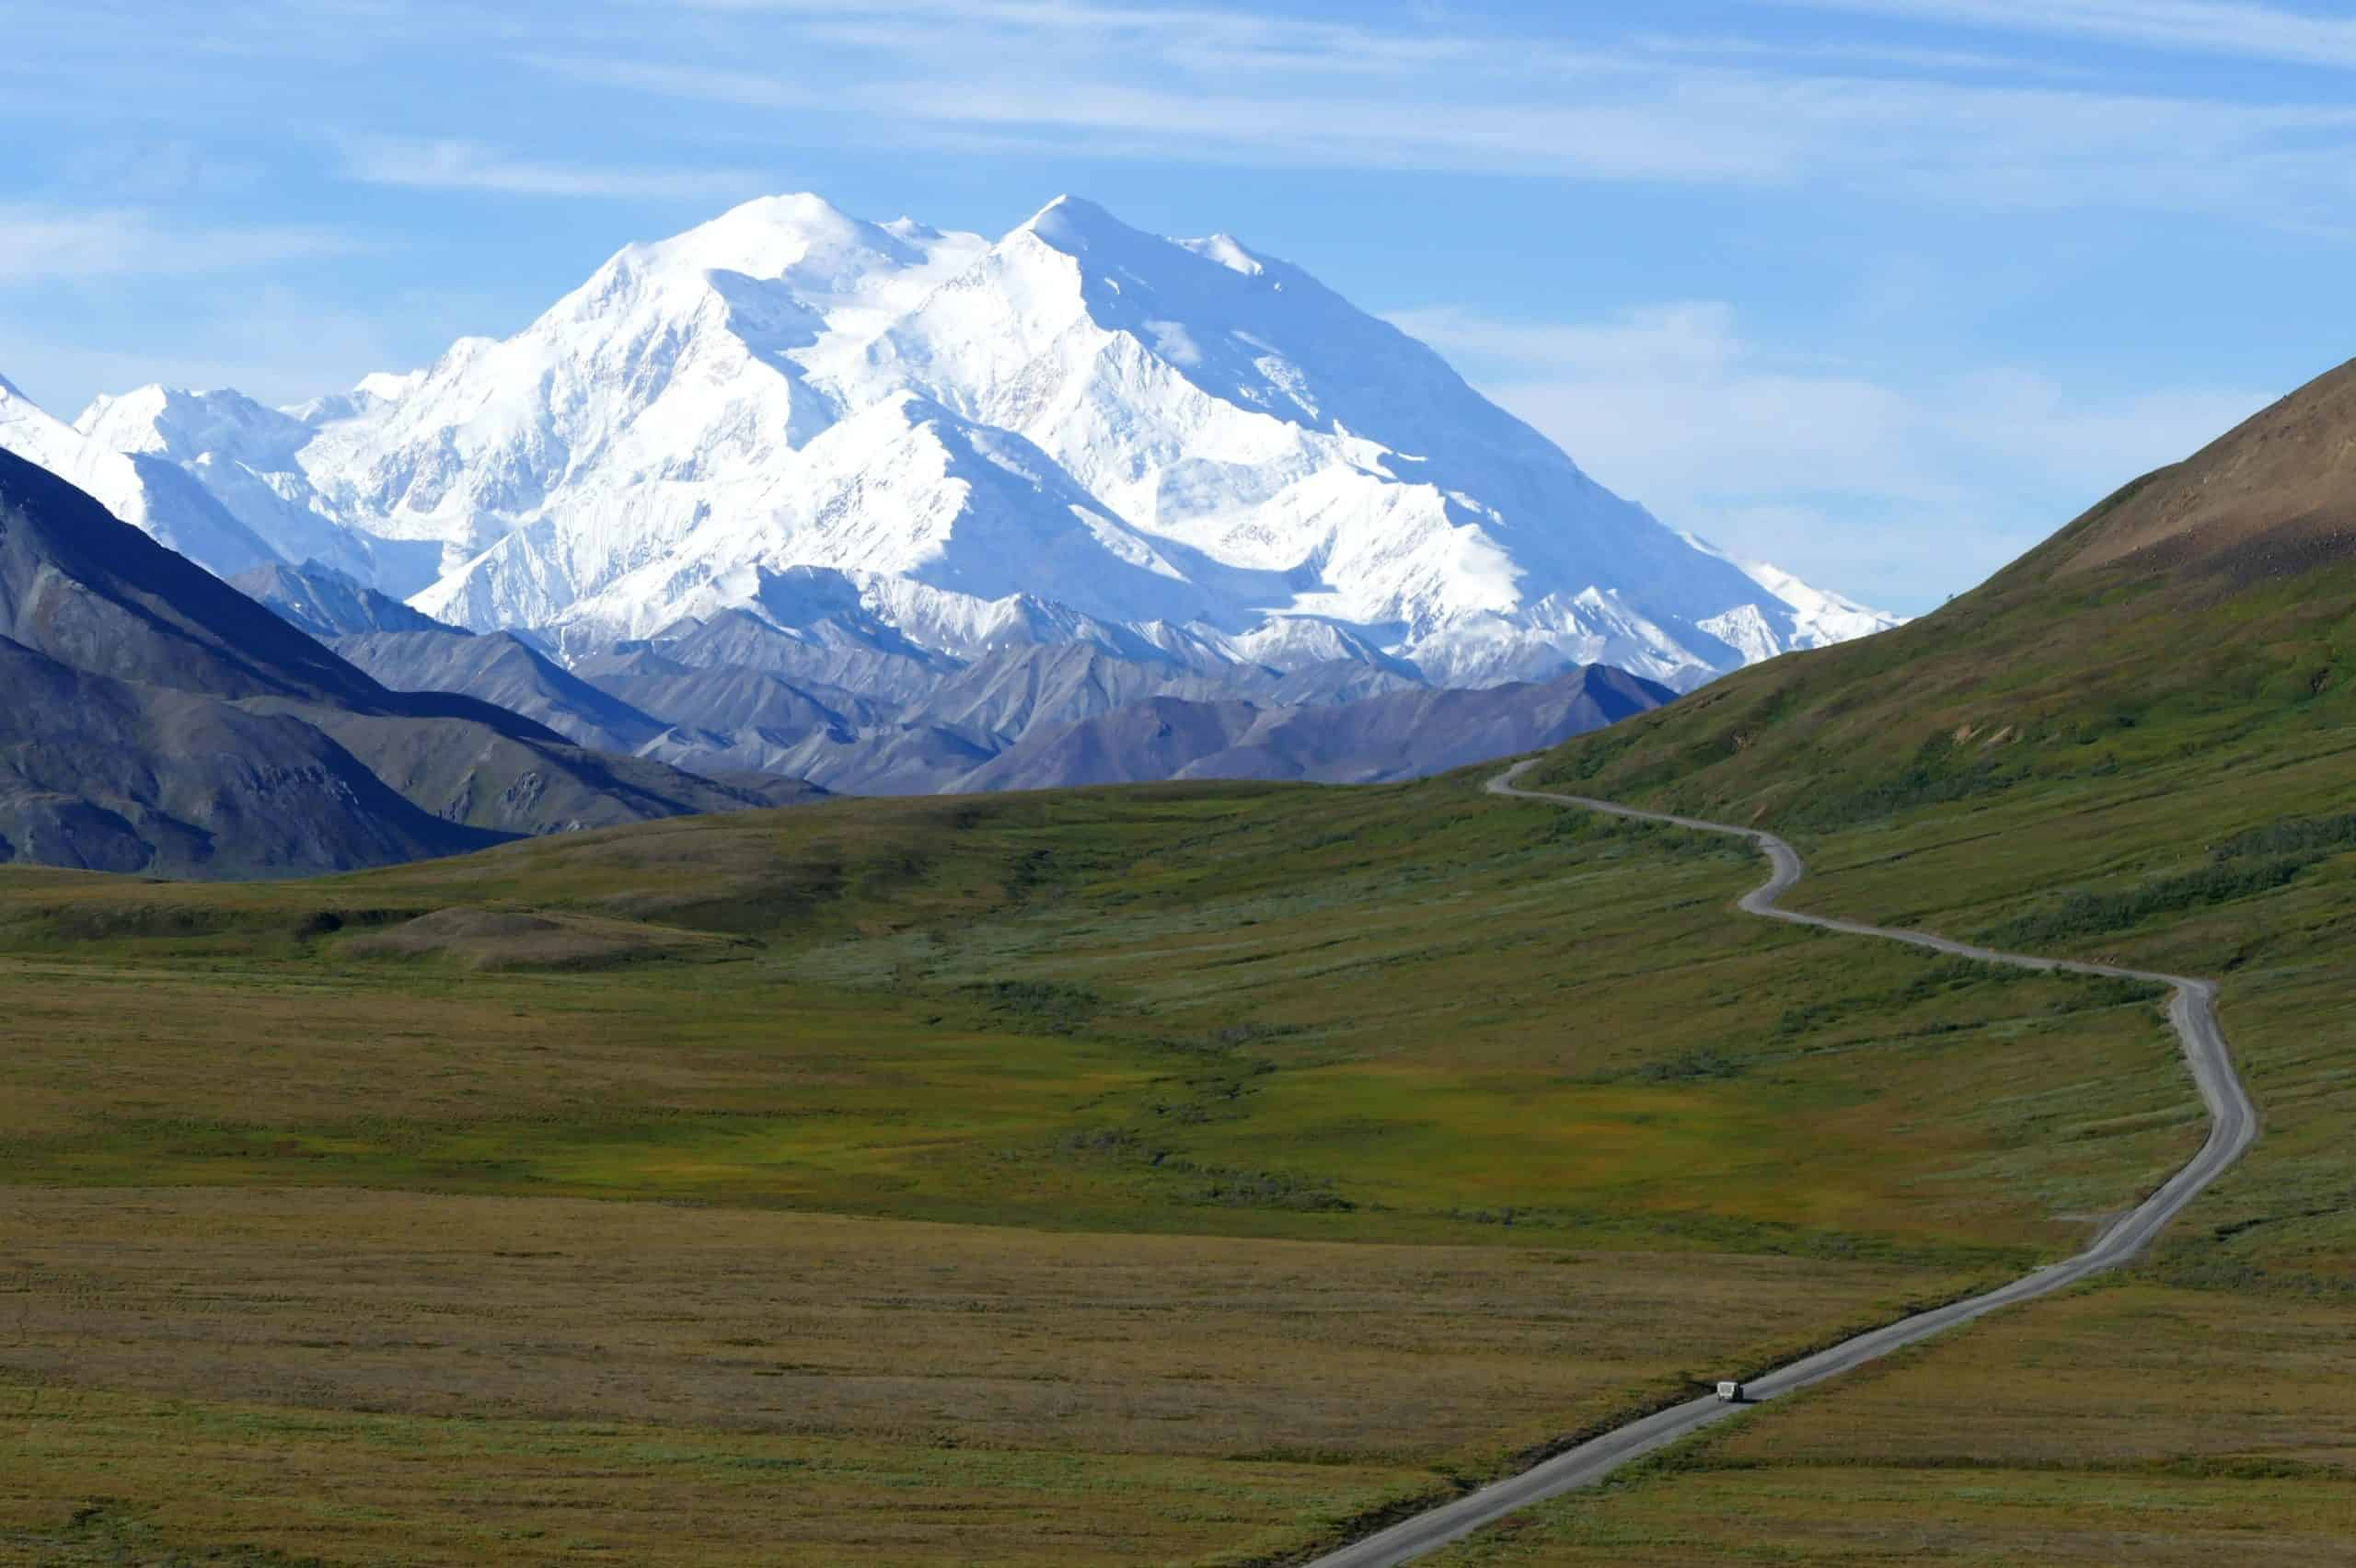 Which National Park Has the Highest Mountain?